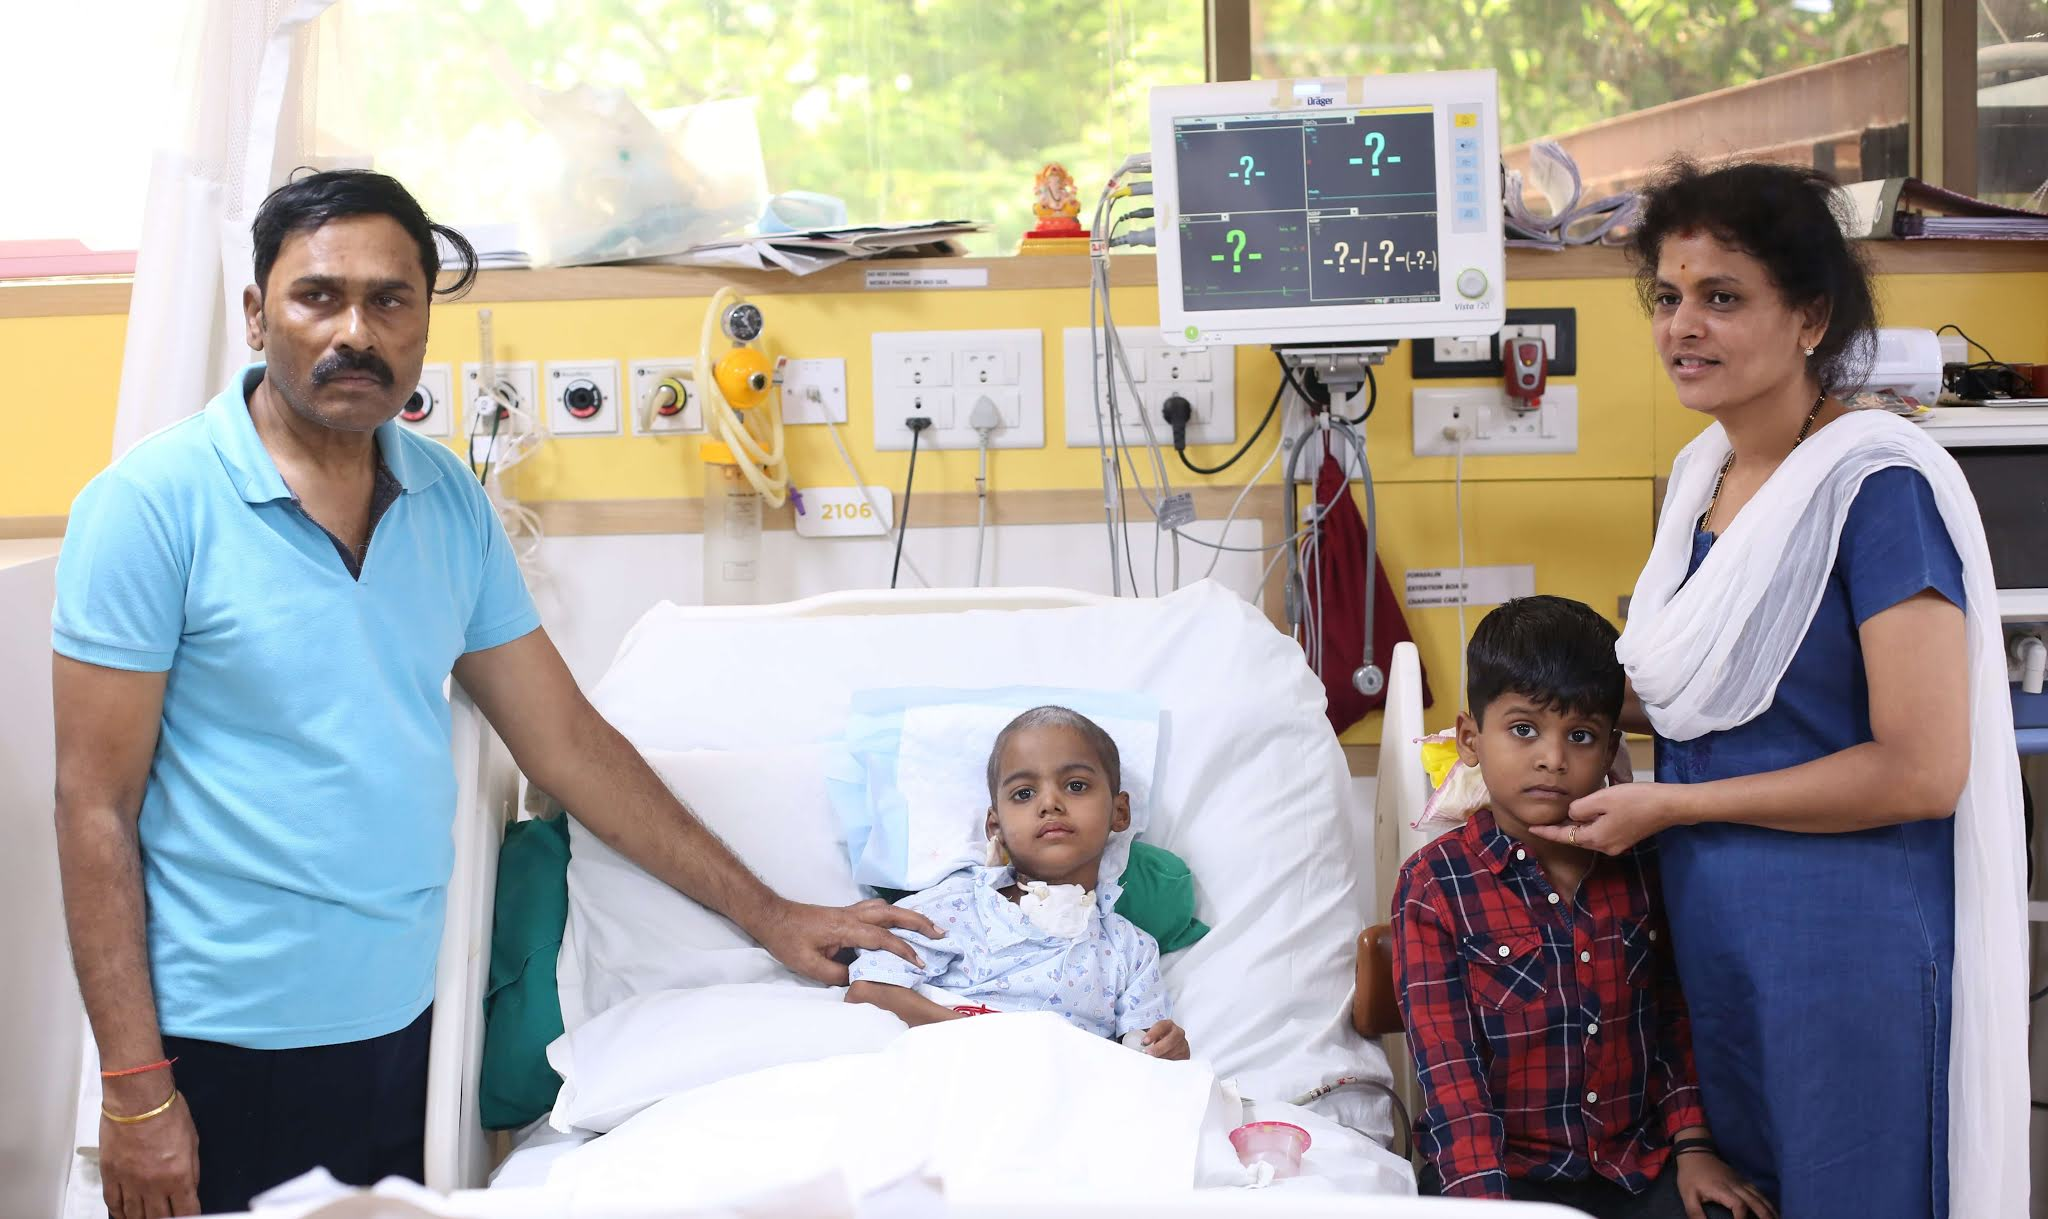 Crowdfunding Helps Yash Survive Pediatric Diabetes